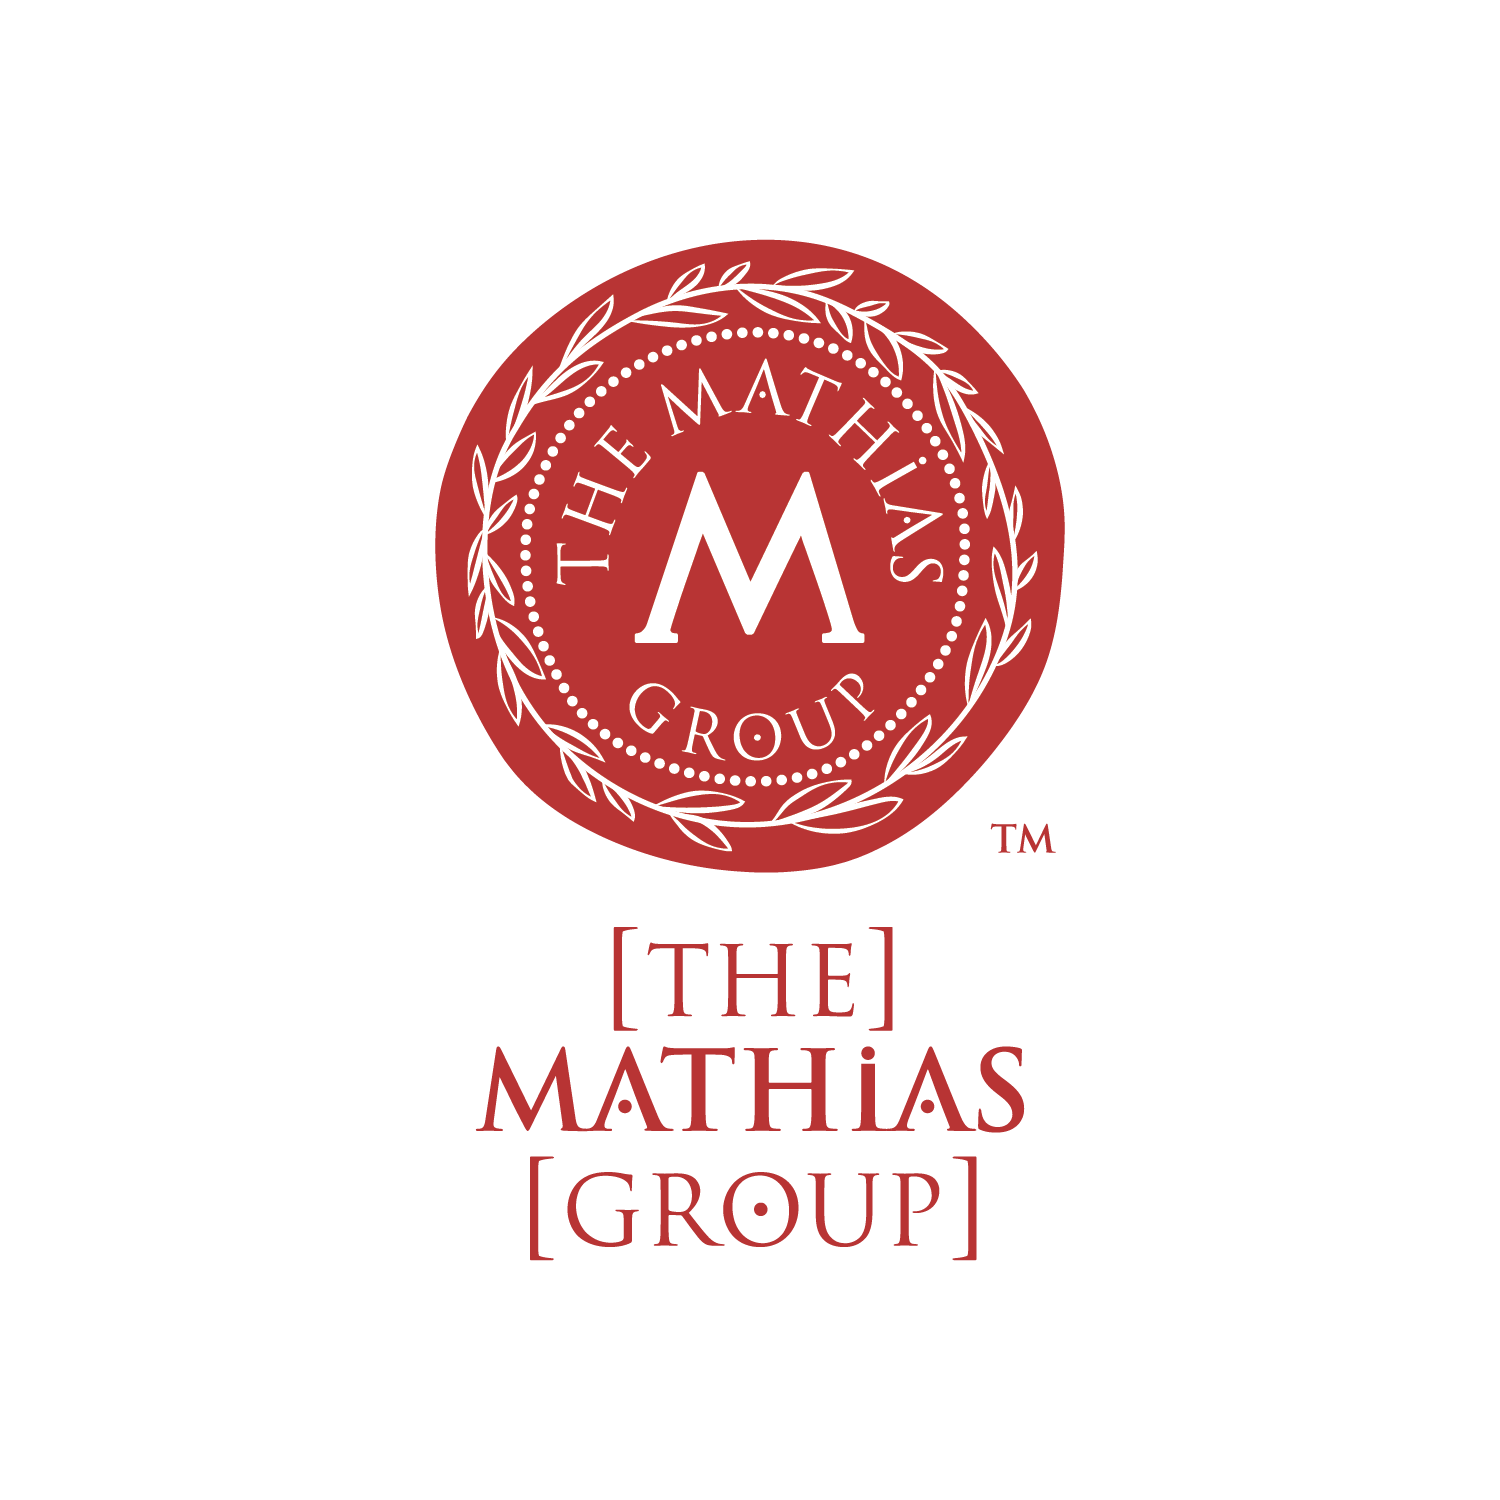 The Mathias Group